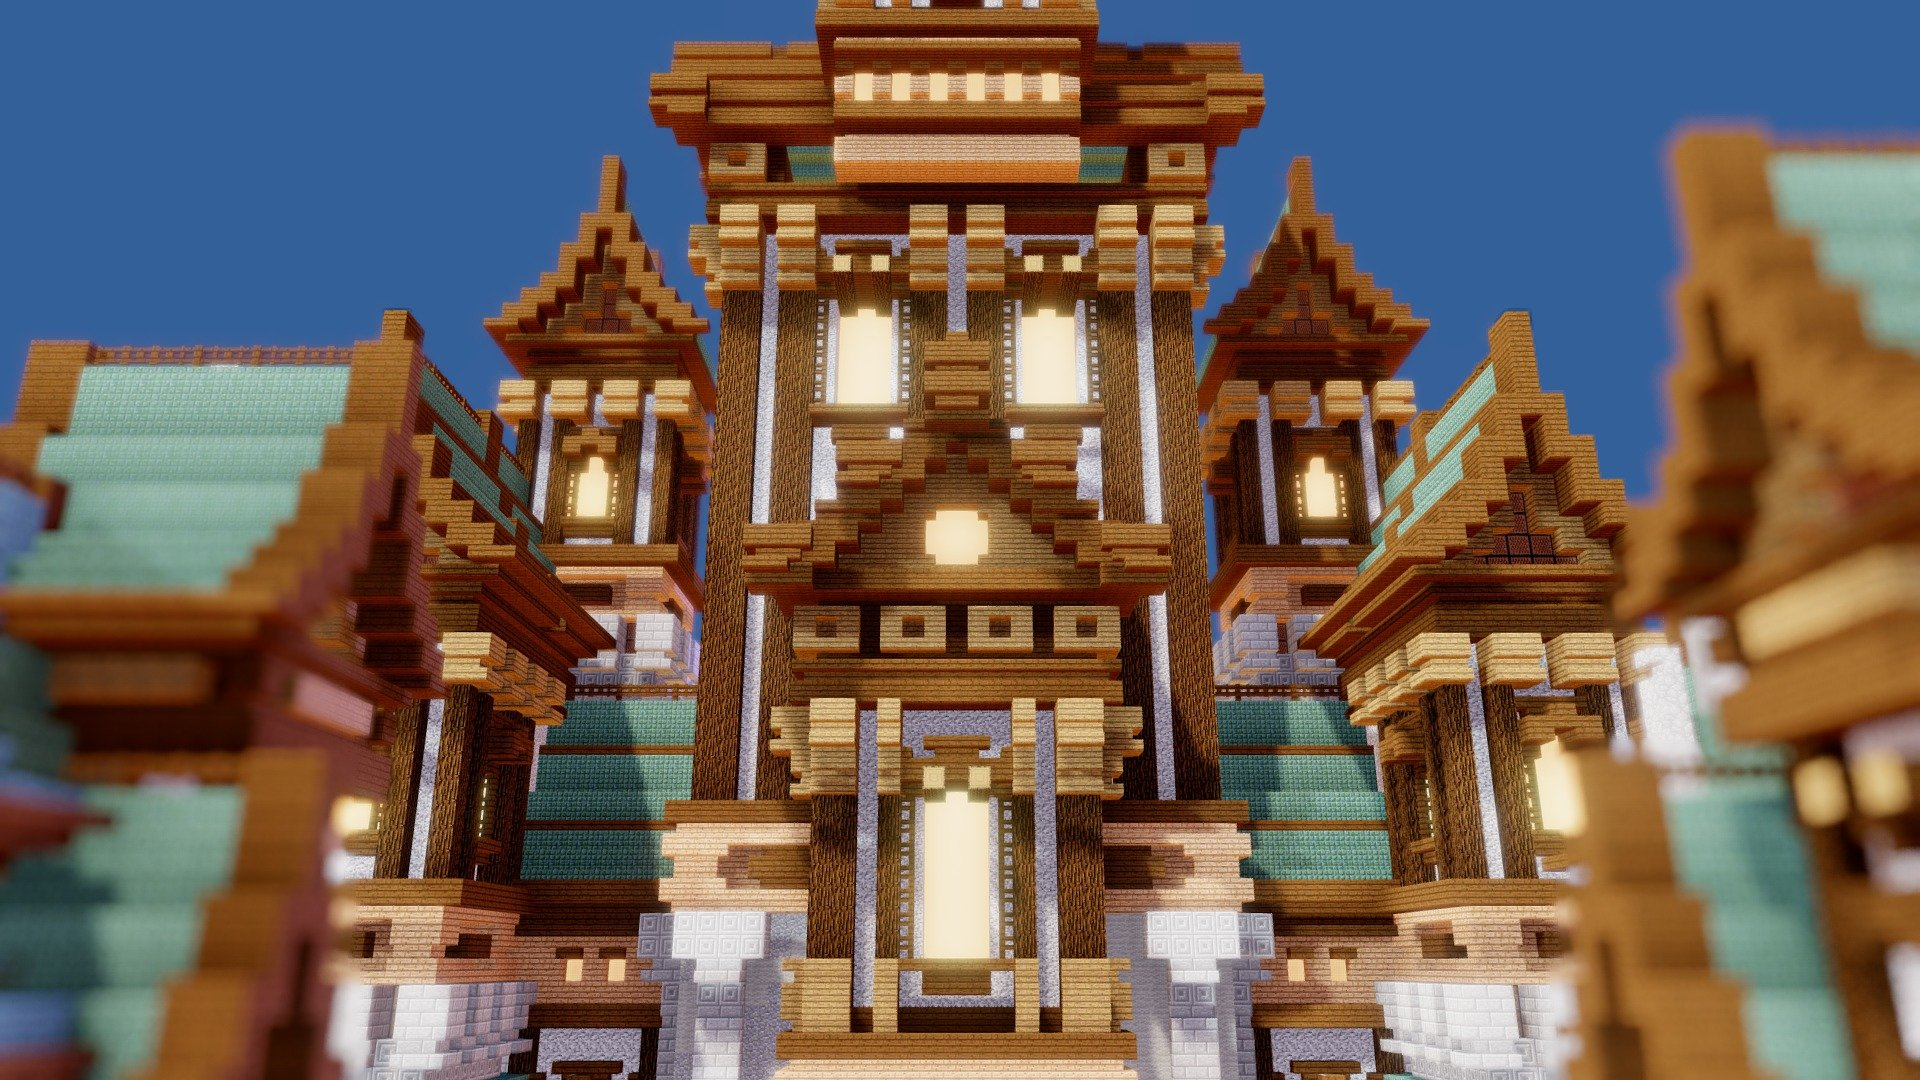 Fantasy Minecraft Castle WIP - Download Free 3D model by ...